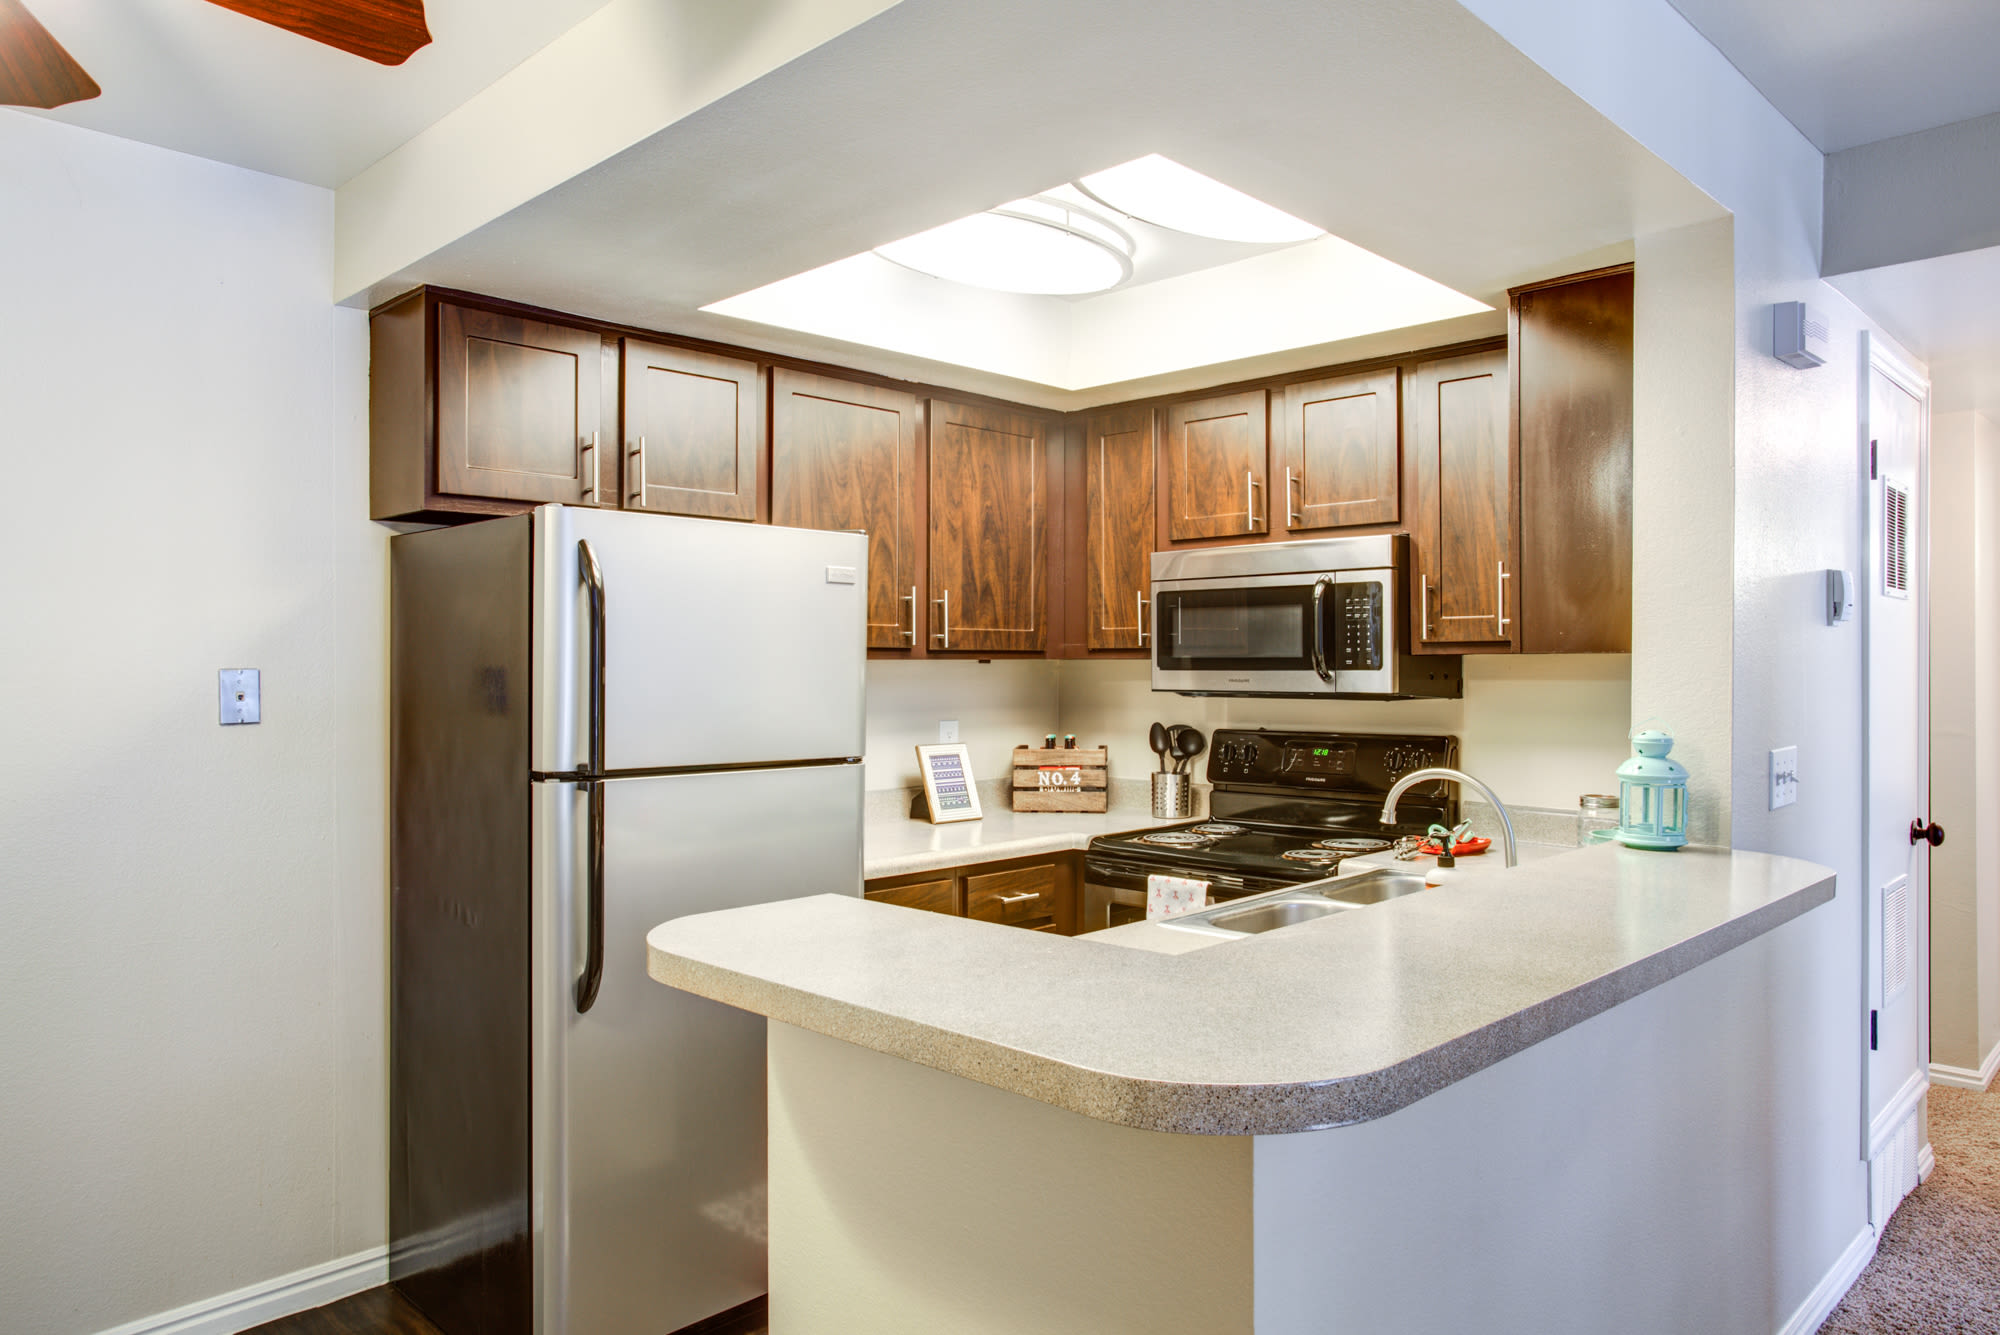 1 2 Bedroom Apartments For Rent In Salt Lake City Ut